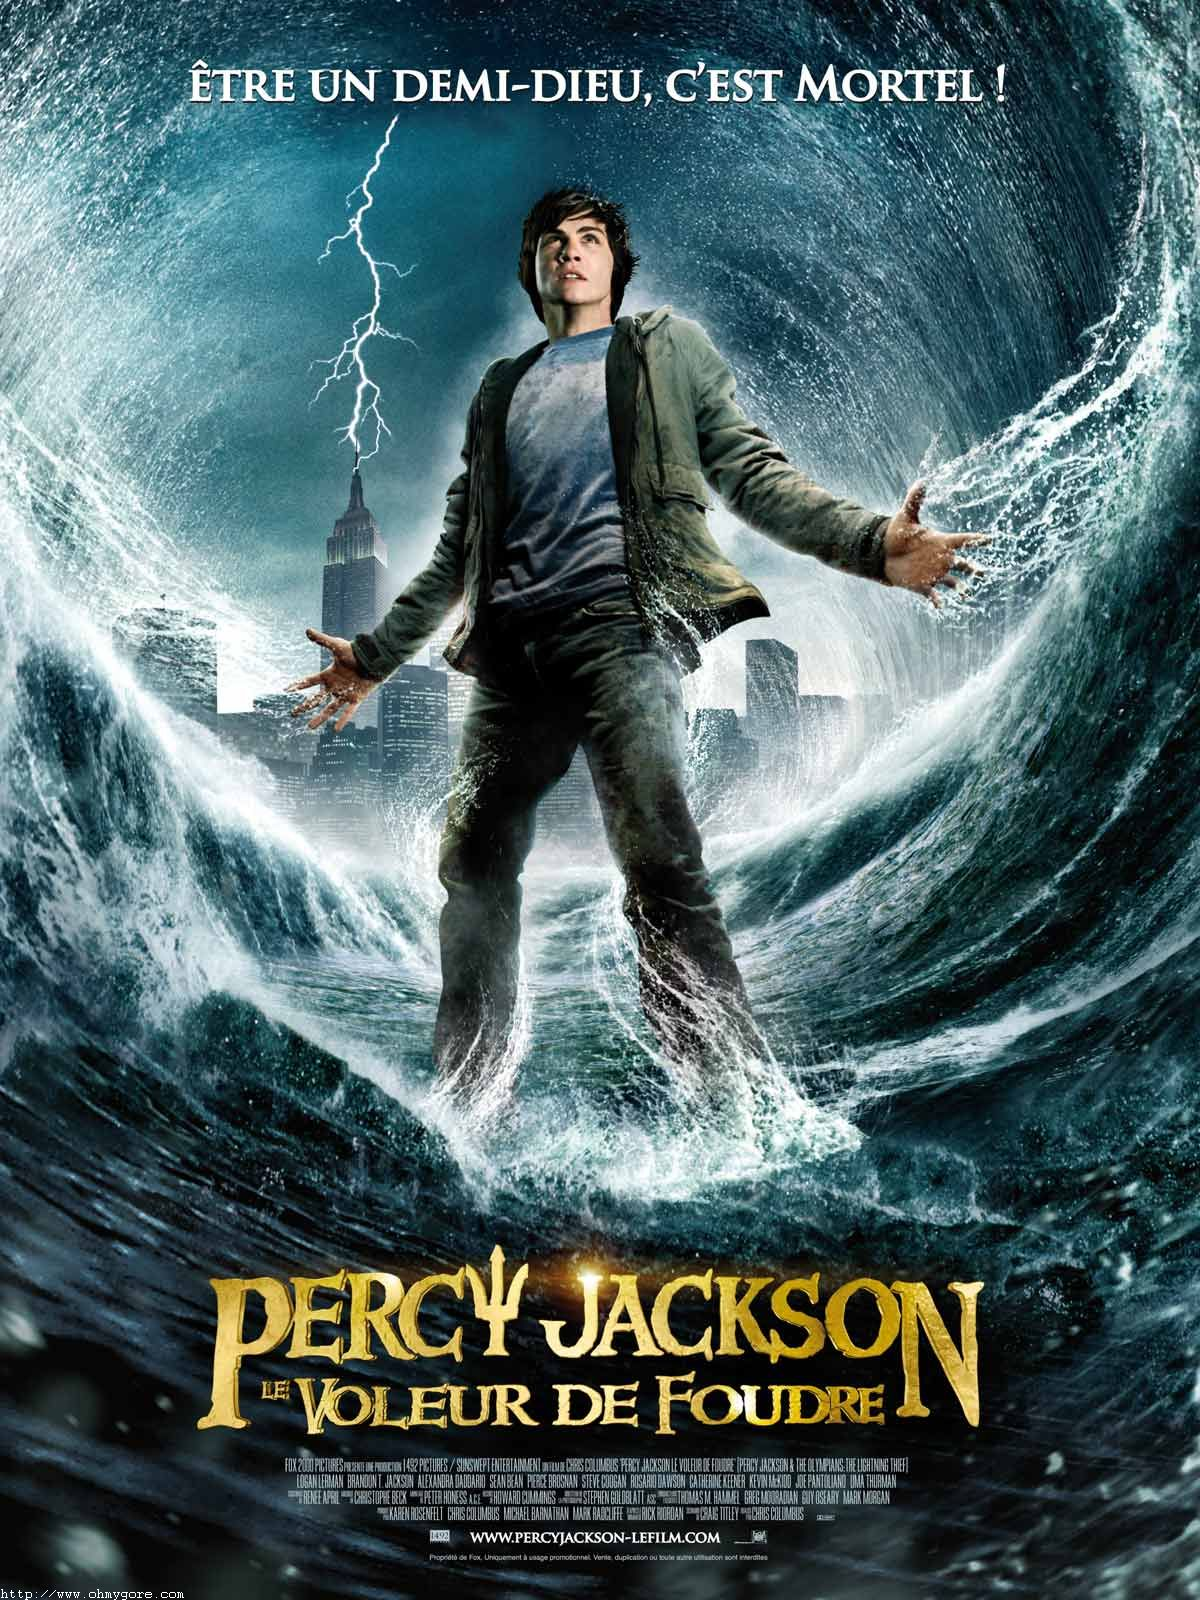 Percy Jackson and the Olympians 5 Book Paperback Boxed Set (new covers w/poster